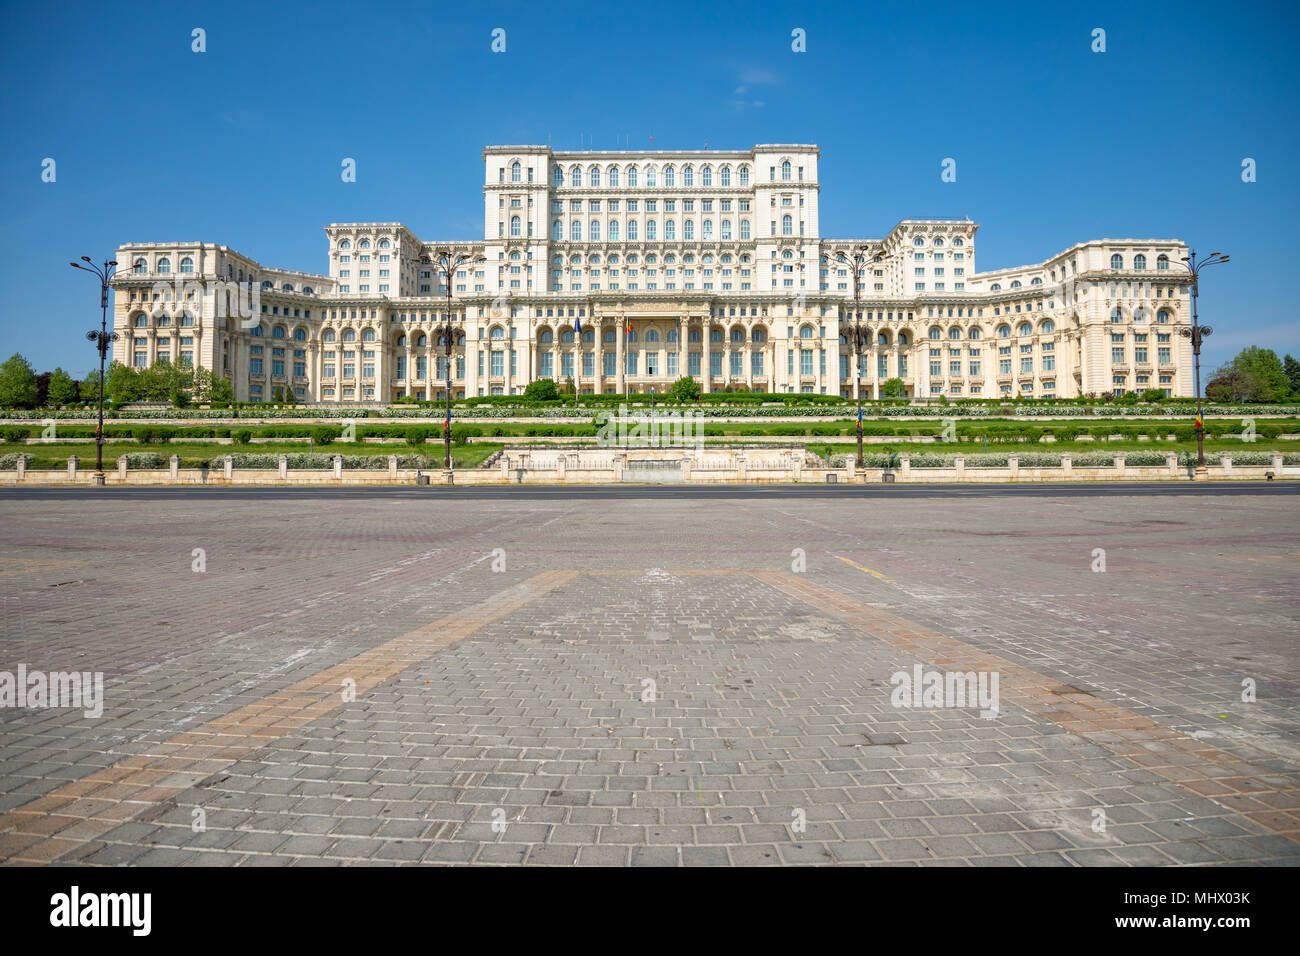 Building of Romanian parliament in Bucharest is the second largest building in the world Stock Photo